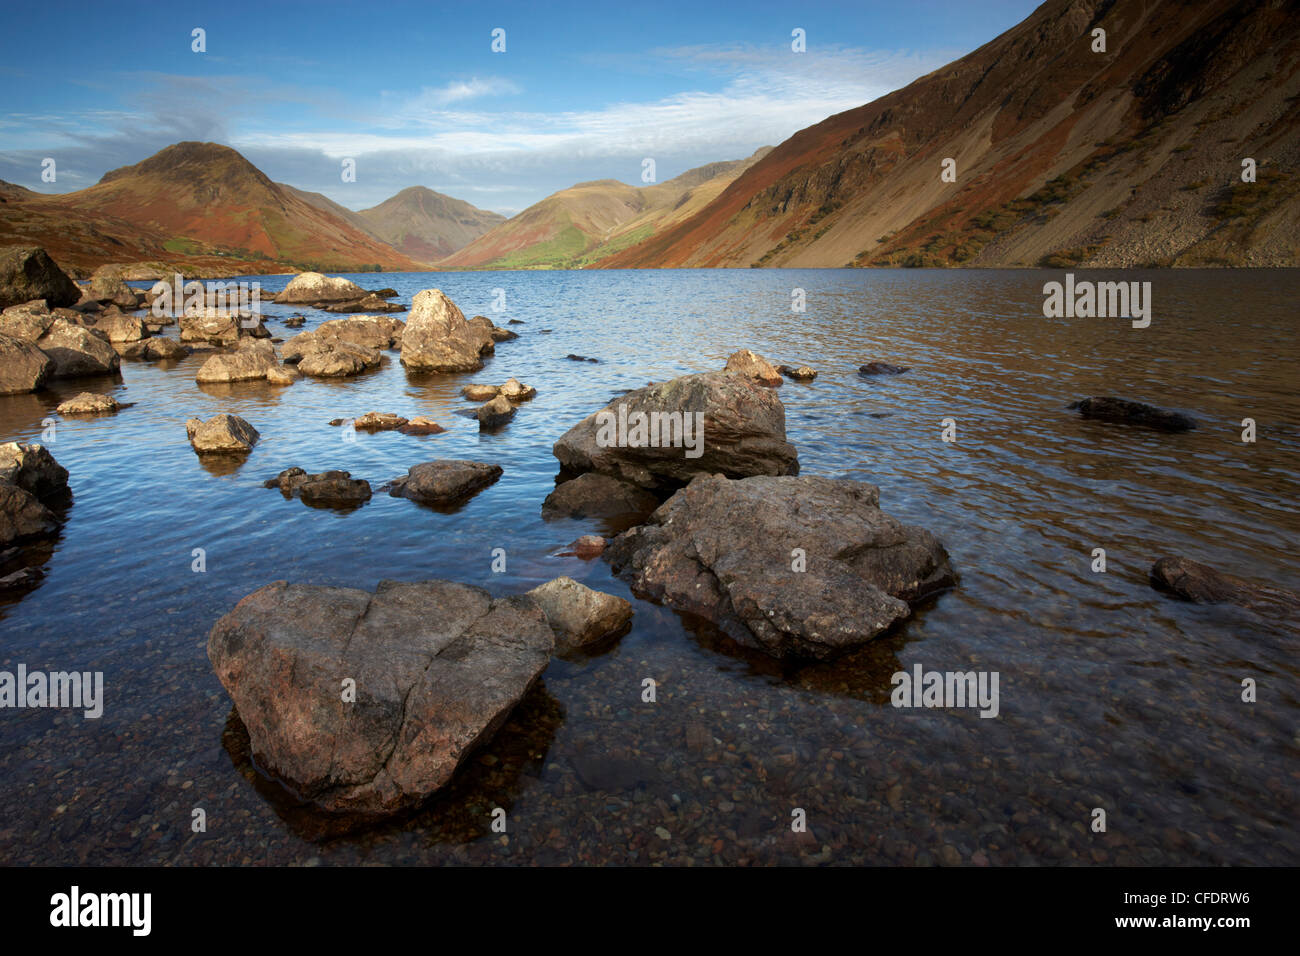 Soirée d'automne dans le Wastwater au Parc National du Lake District, Cumbria, Angleterre, Royaume-Uni, Photo Stock